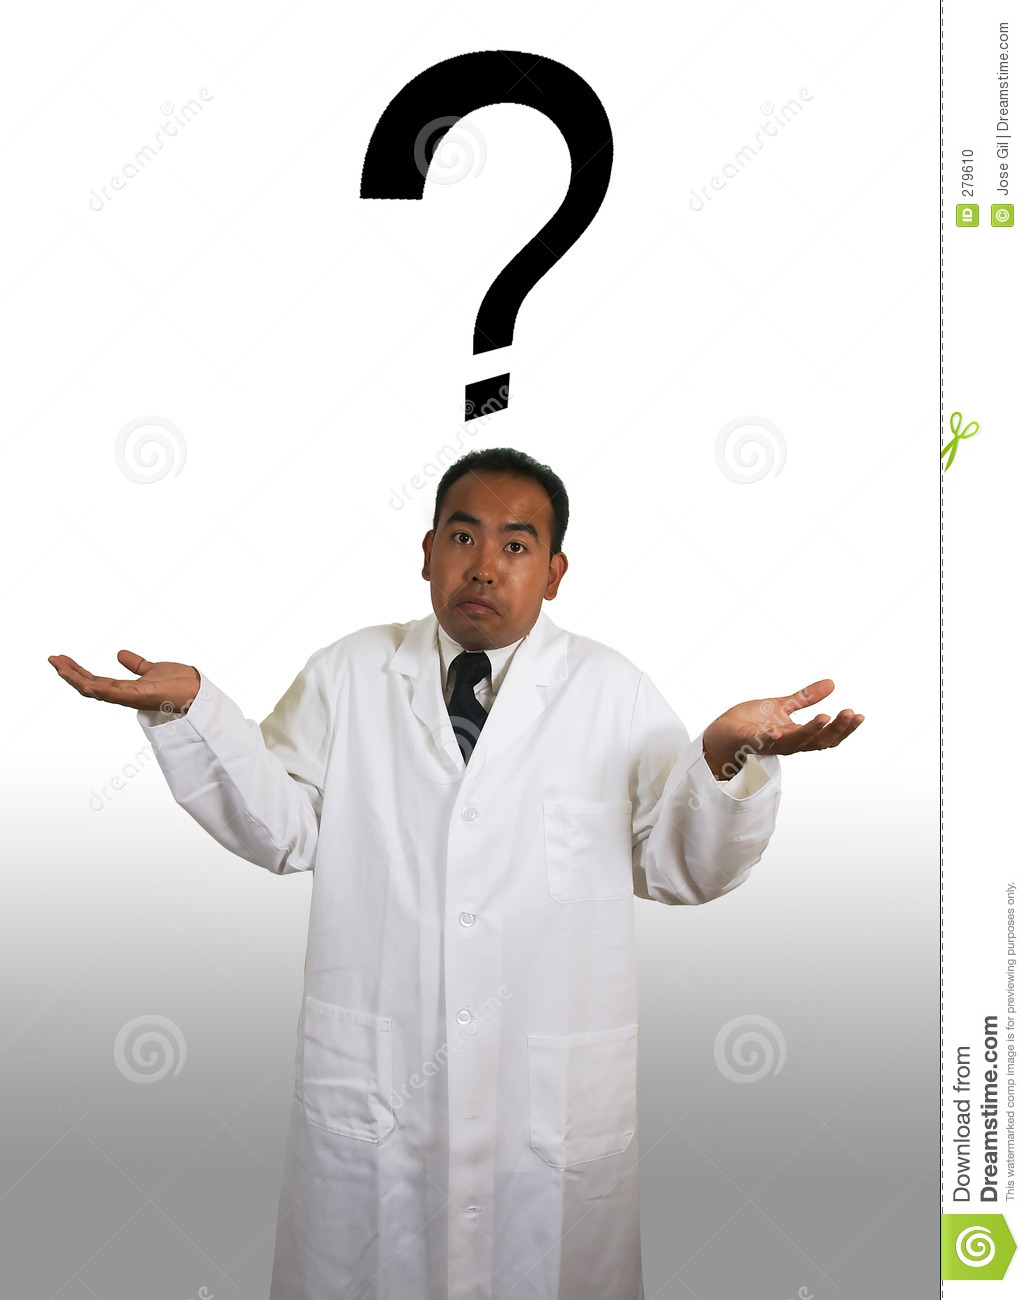 questions on lab i sem Engineering physics lab 3 3 2 8 ee 191 electrical engineering lab 3 3 2 9  me 191  first year second semester a  and firm handling  questions and taking in criticism of self turn-taking strategies and effective  intervention.